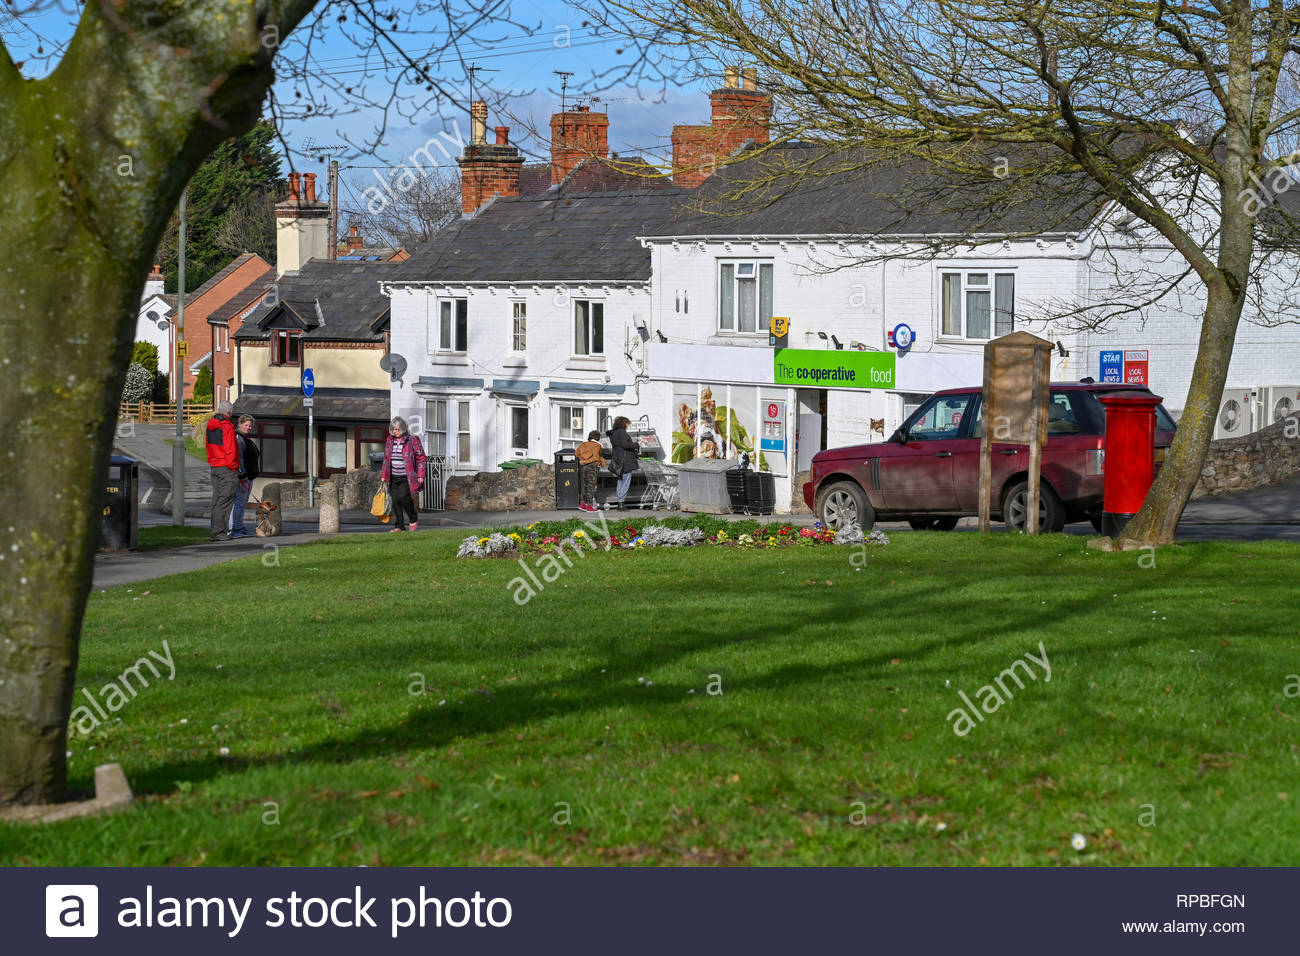 Local people visit the  Co-op store in the village of Pontesbury, Shropshire UK during an unseasonably warm February morning. - Stock Image